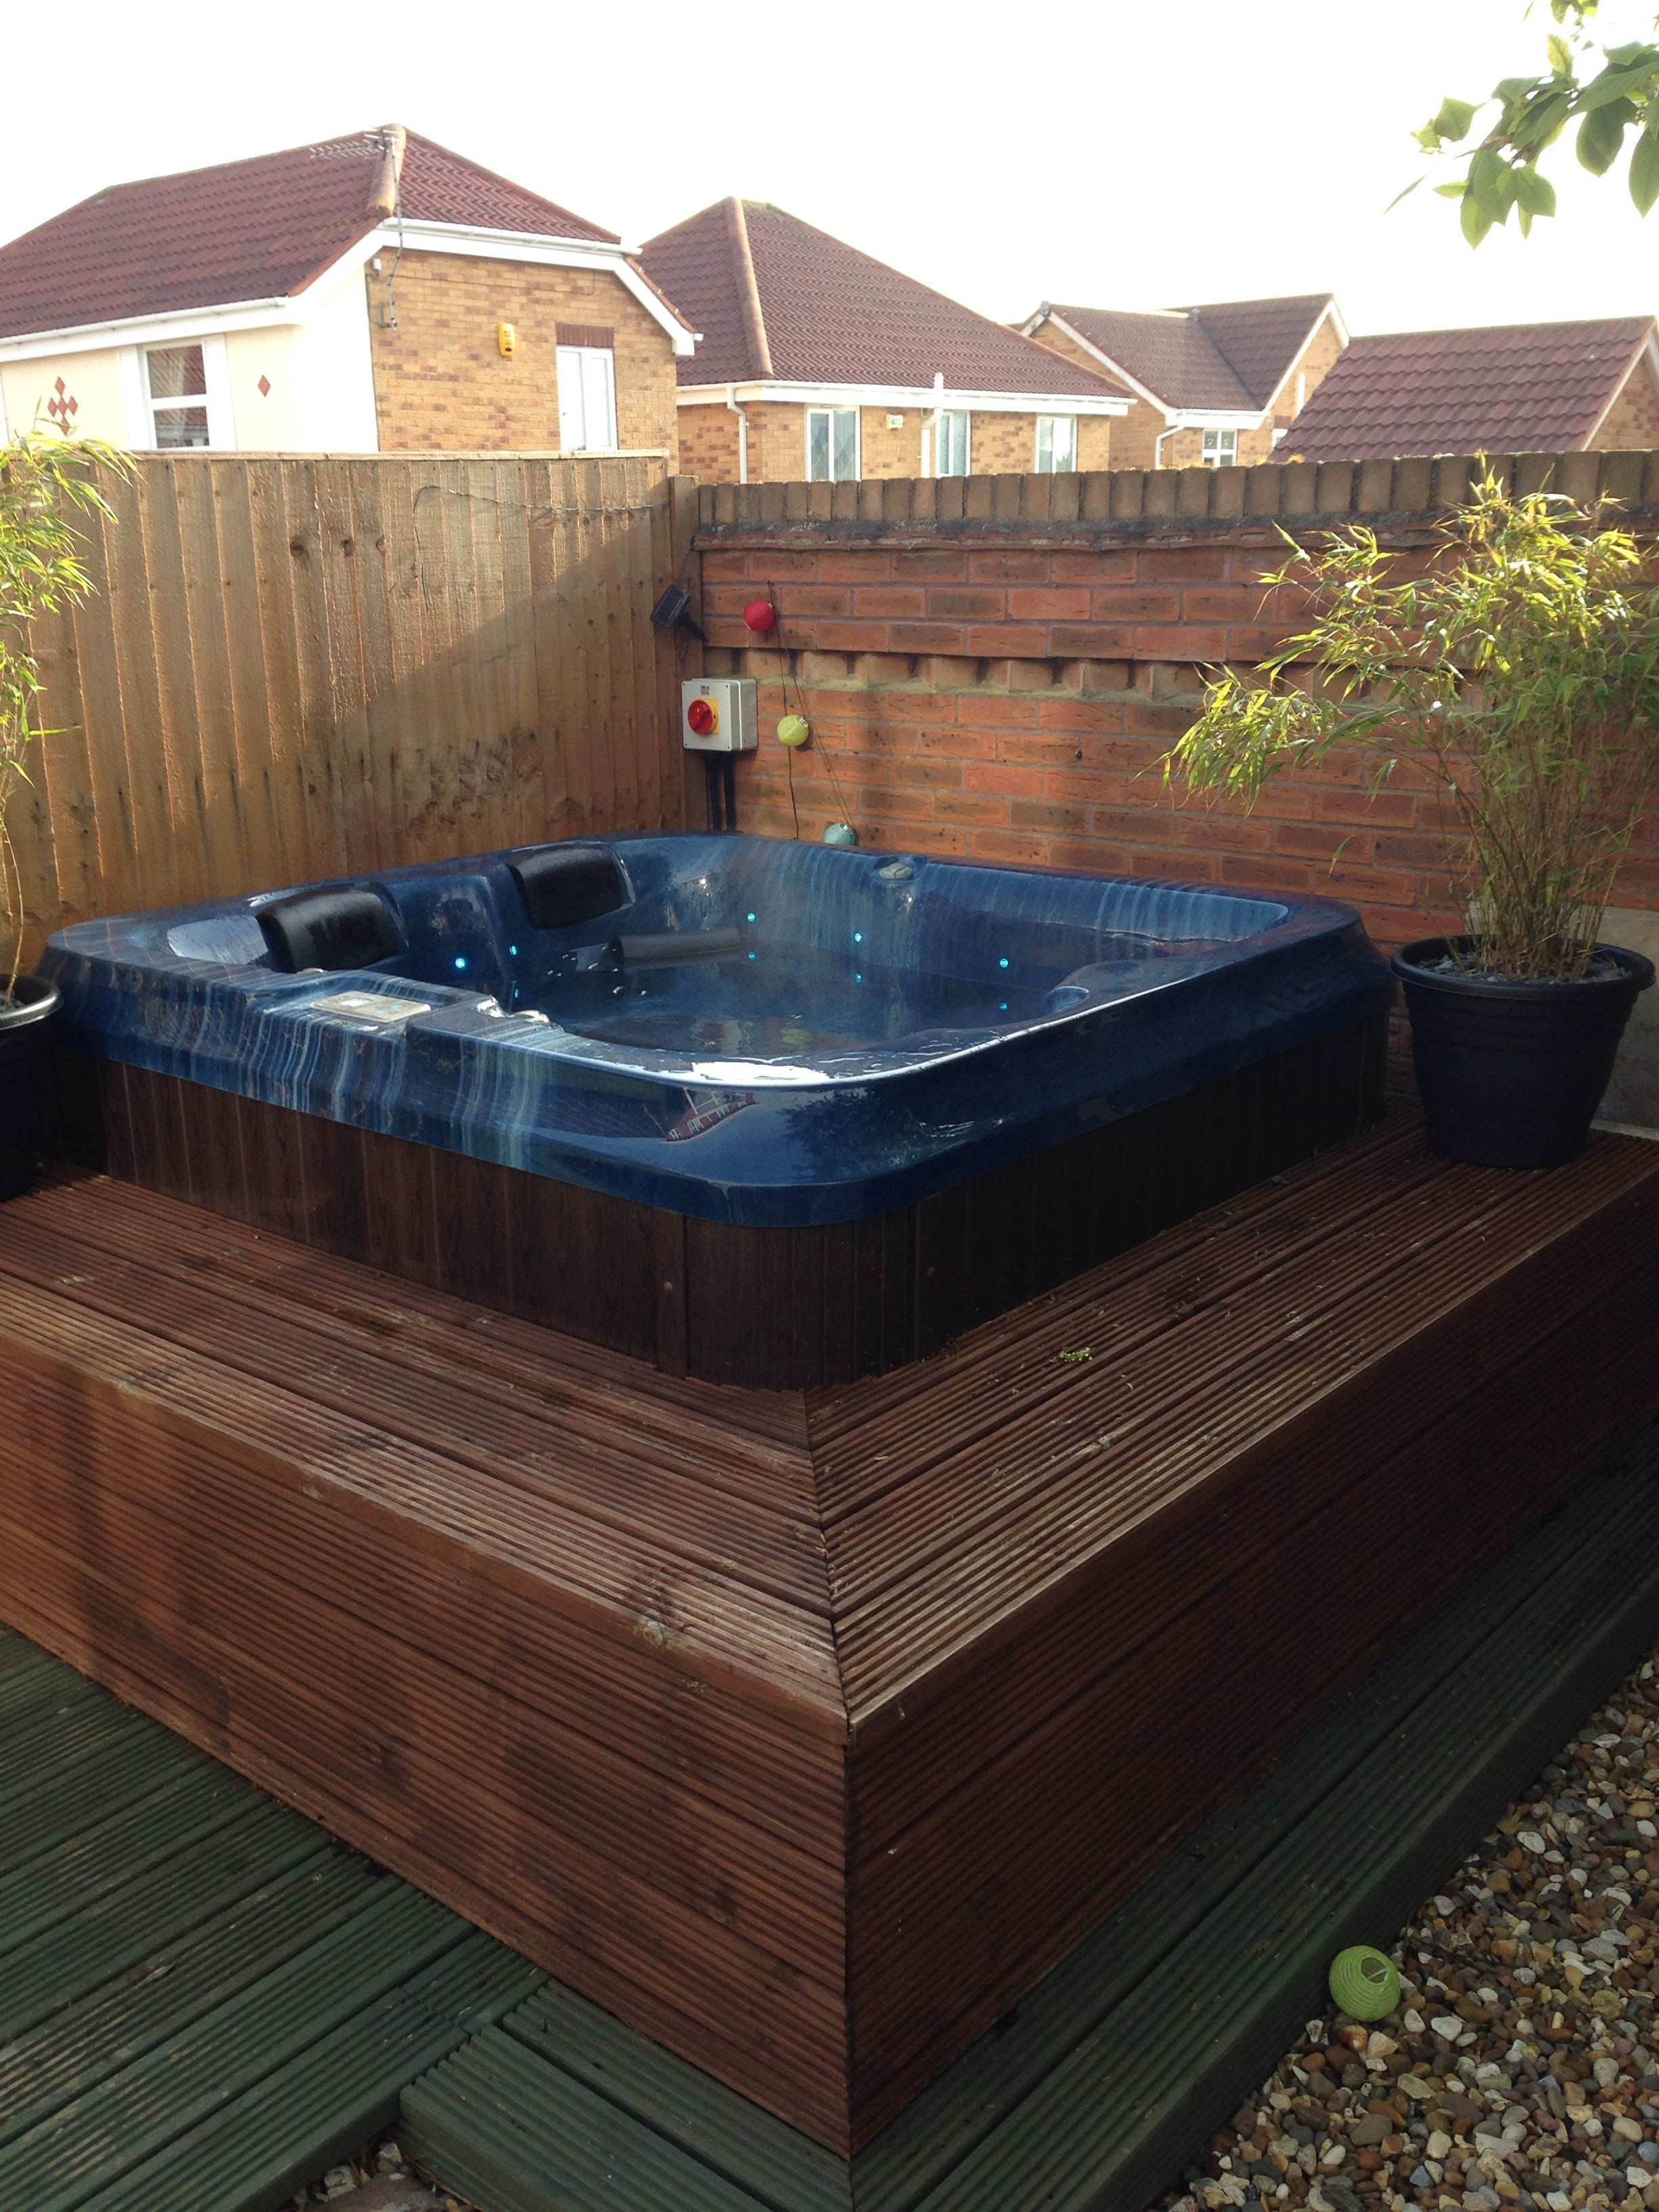 Home and garden decor #hot_tubs | ☆○POOLS, SPAS & HOT TUBS ...